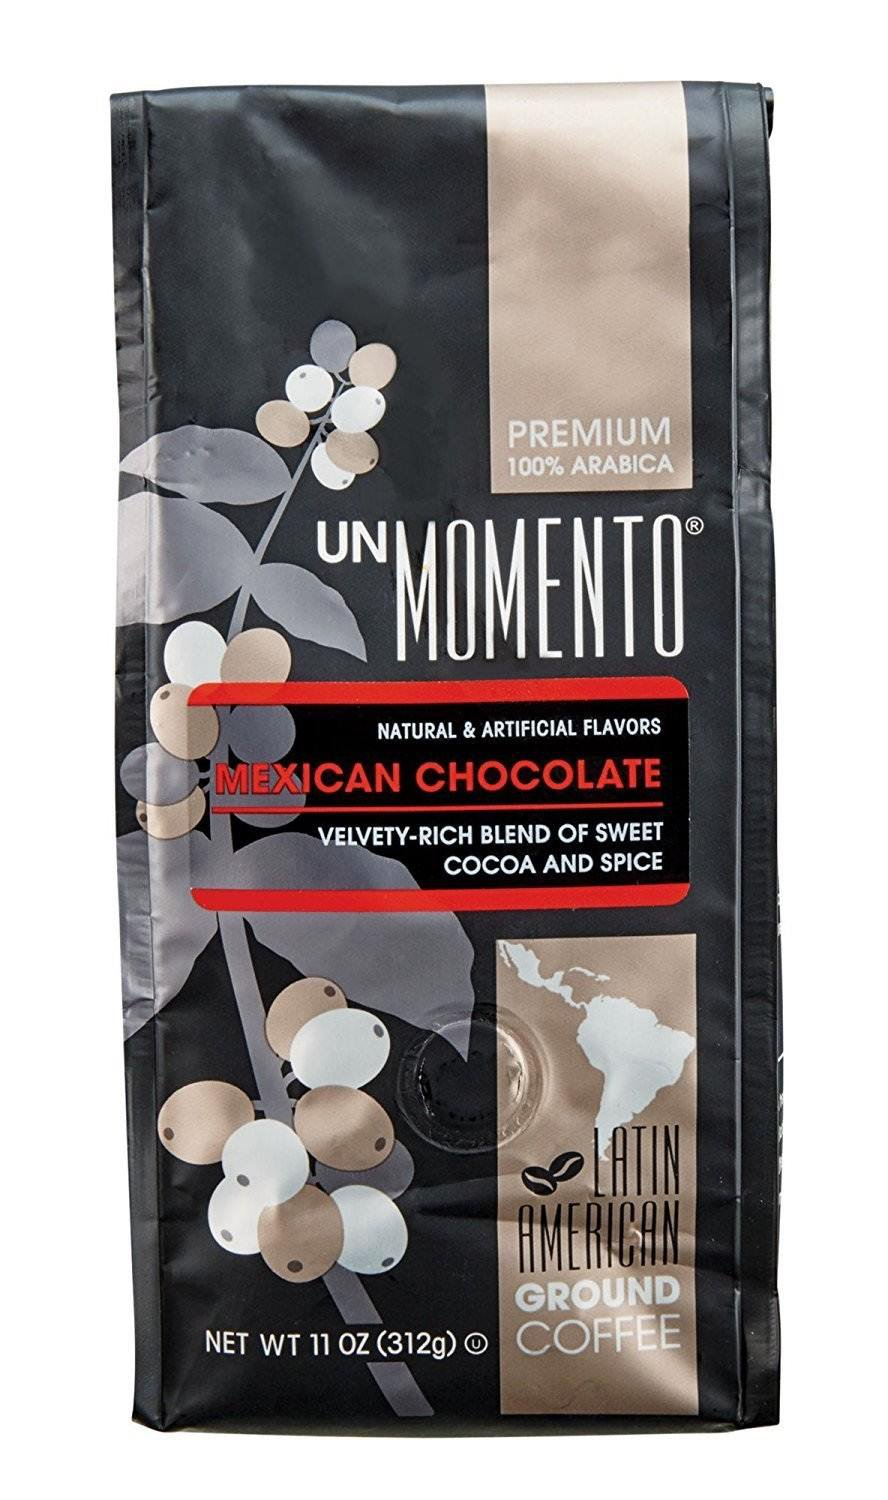 Un Momento Mexican Chocolate Ground flavored Coffee 11 oz cinnamon spice drink beverage Gourmet